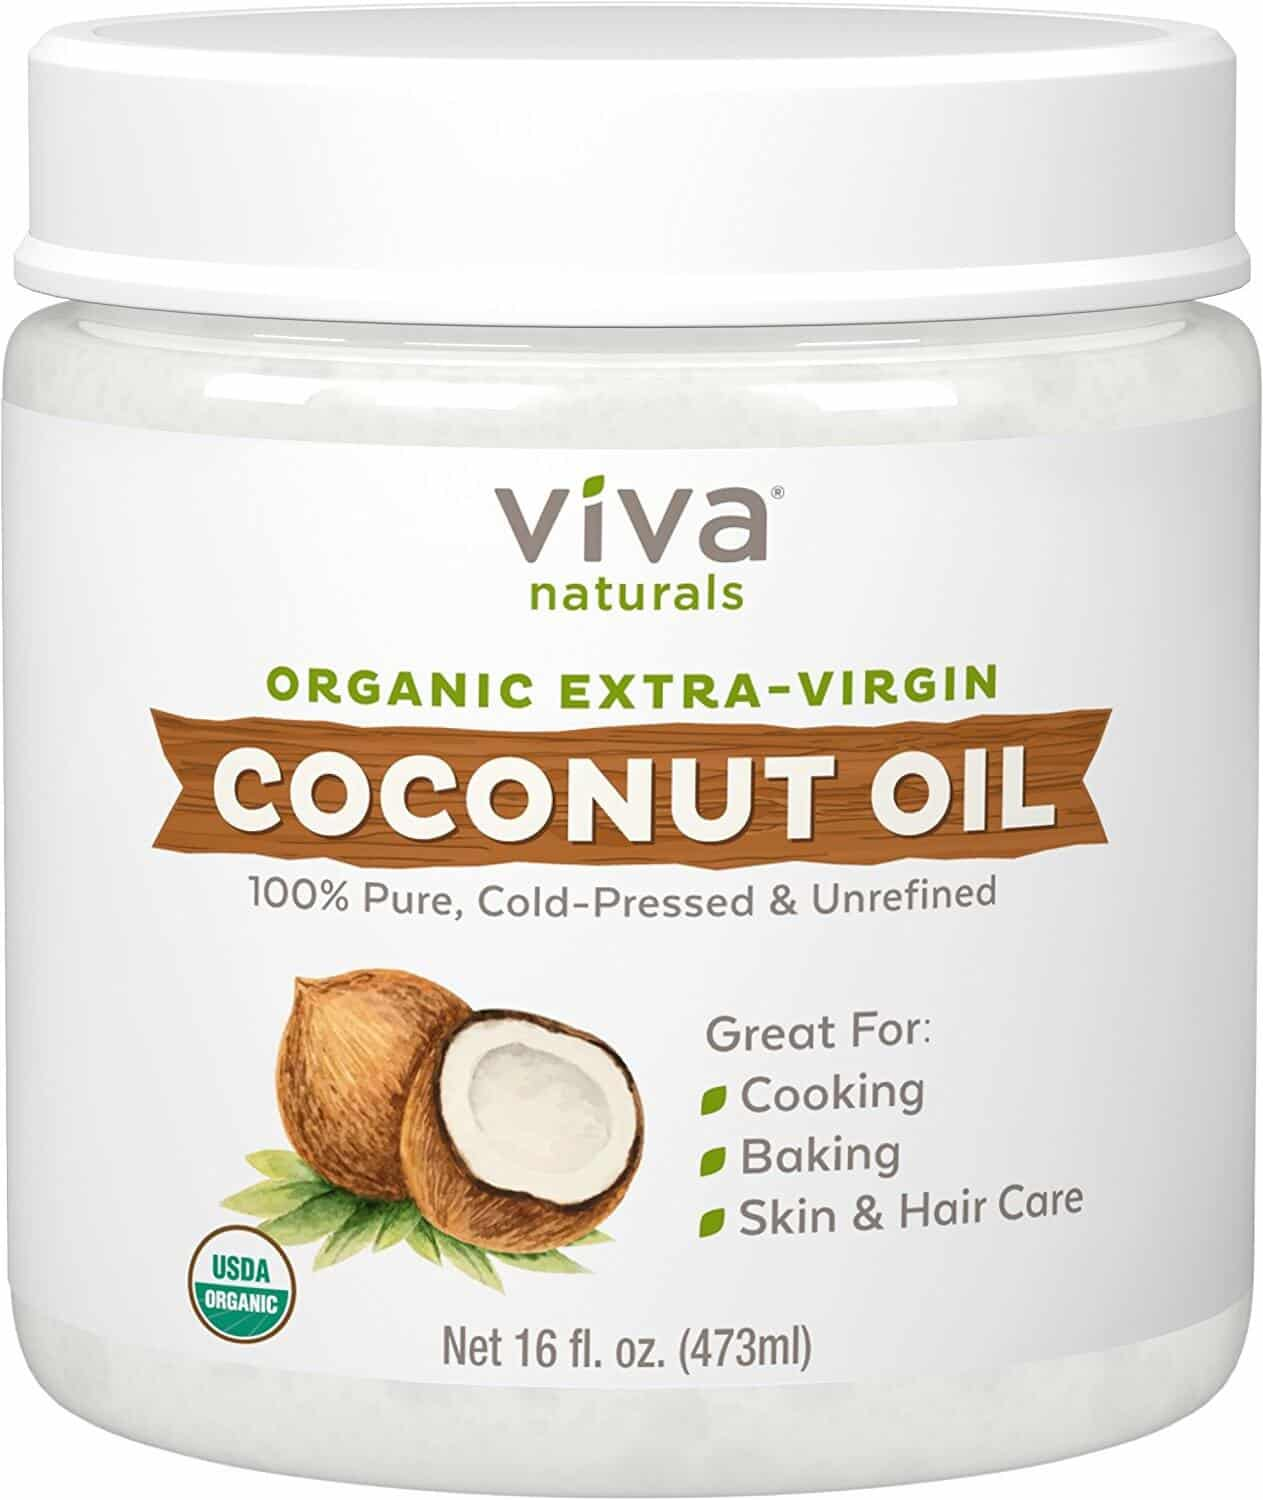 viva coconut oil